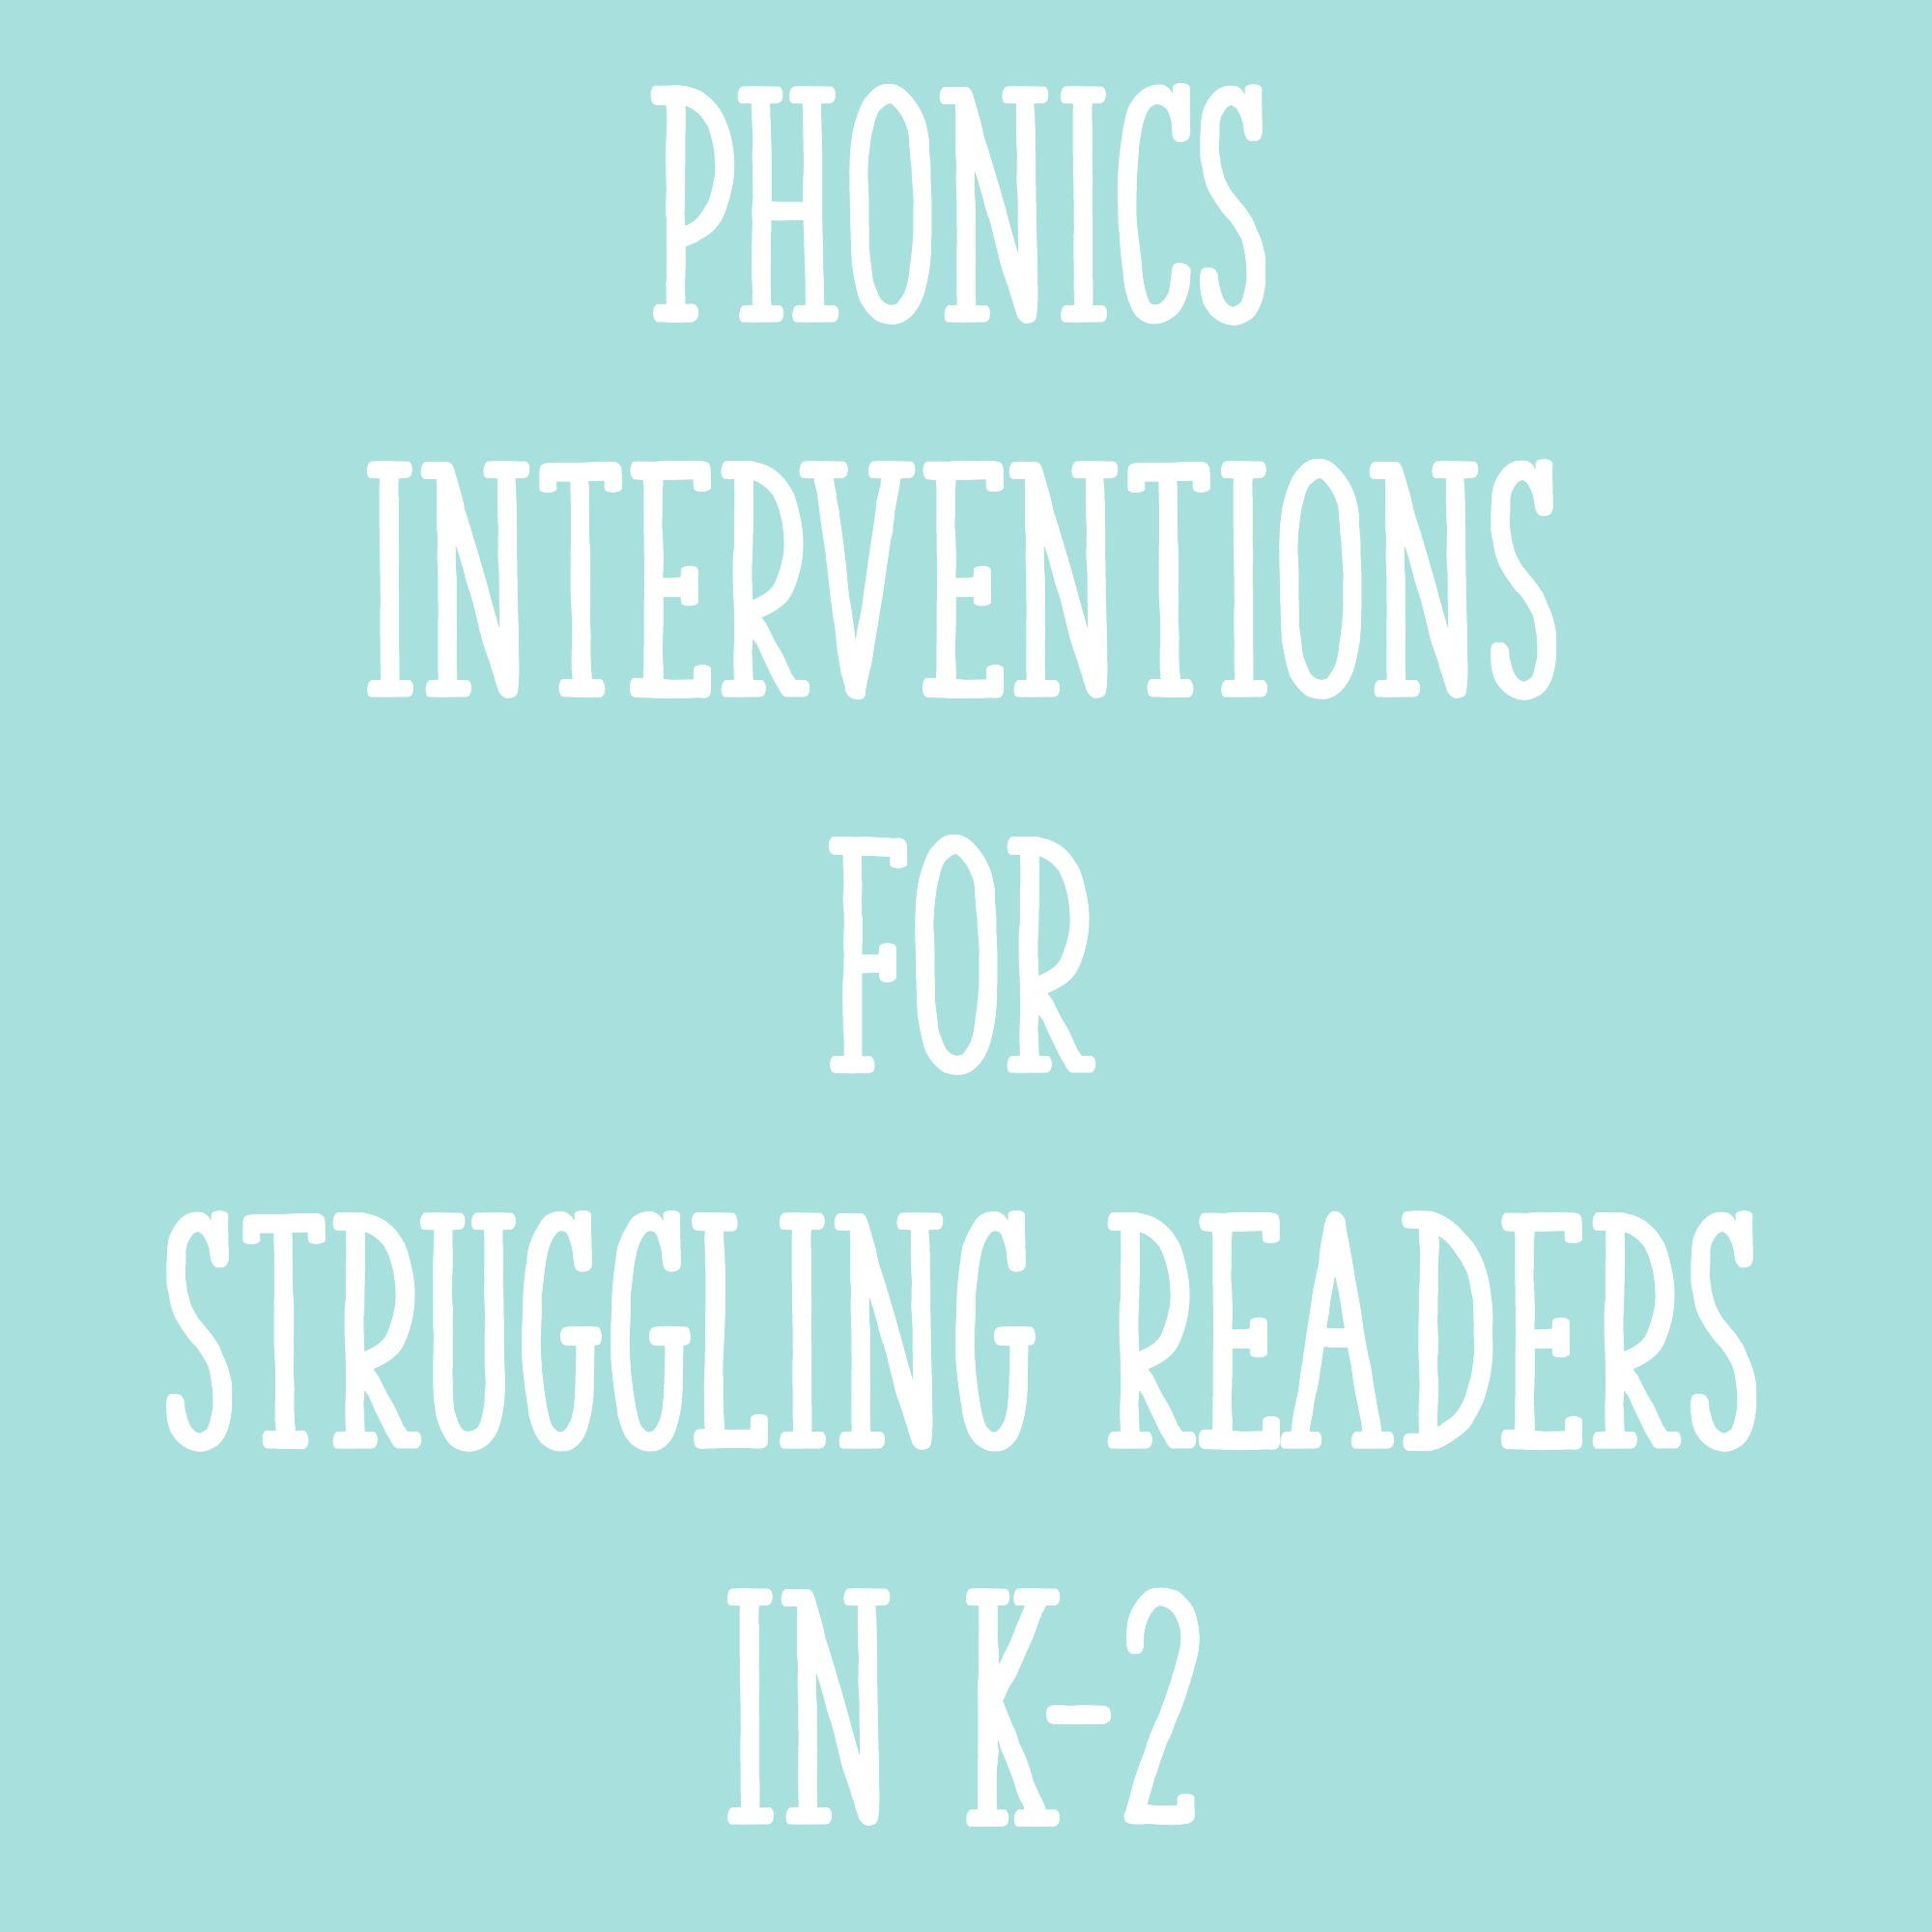 Phonics Interventions For Struggling Readers In K 2